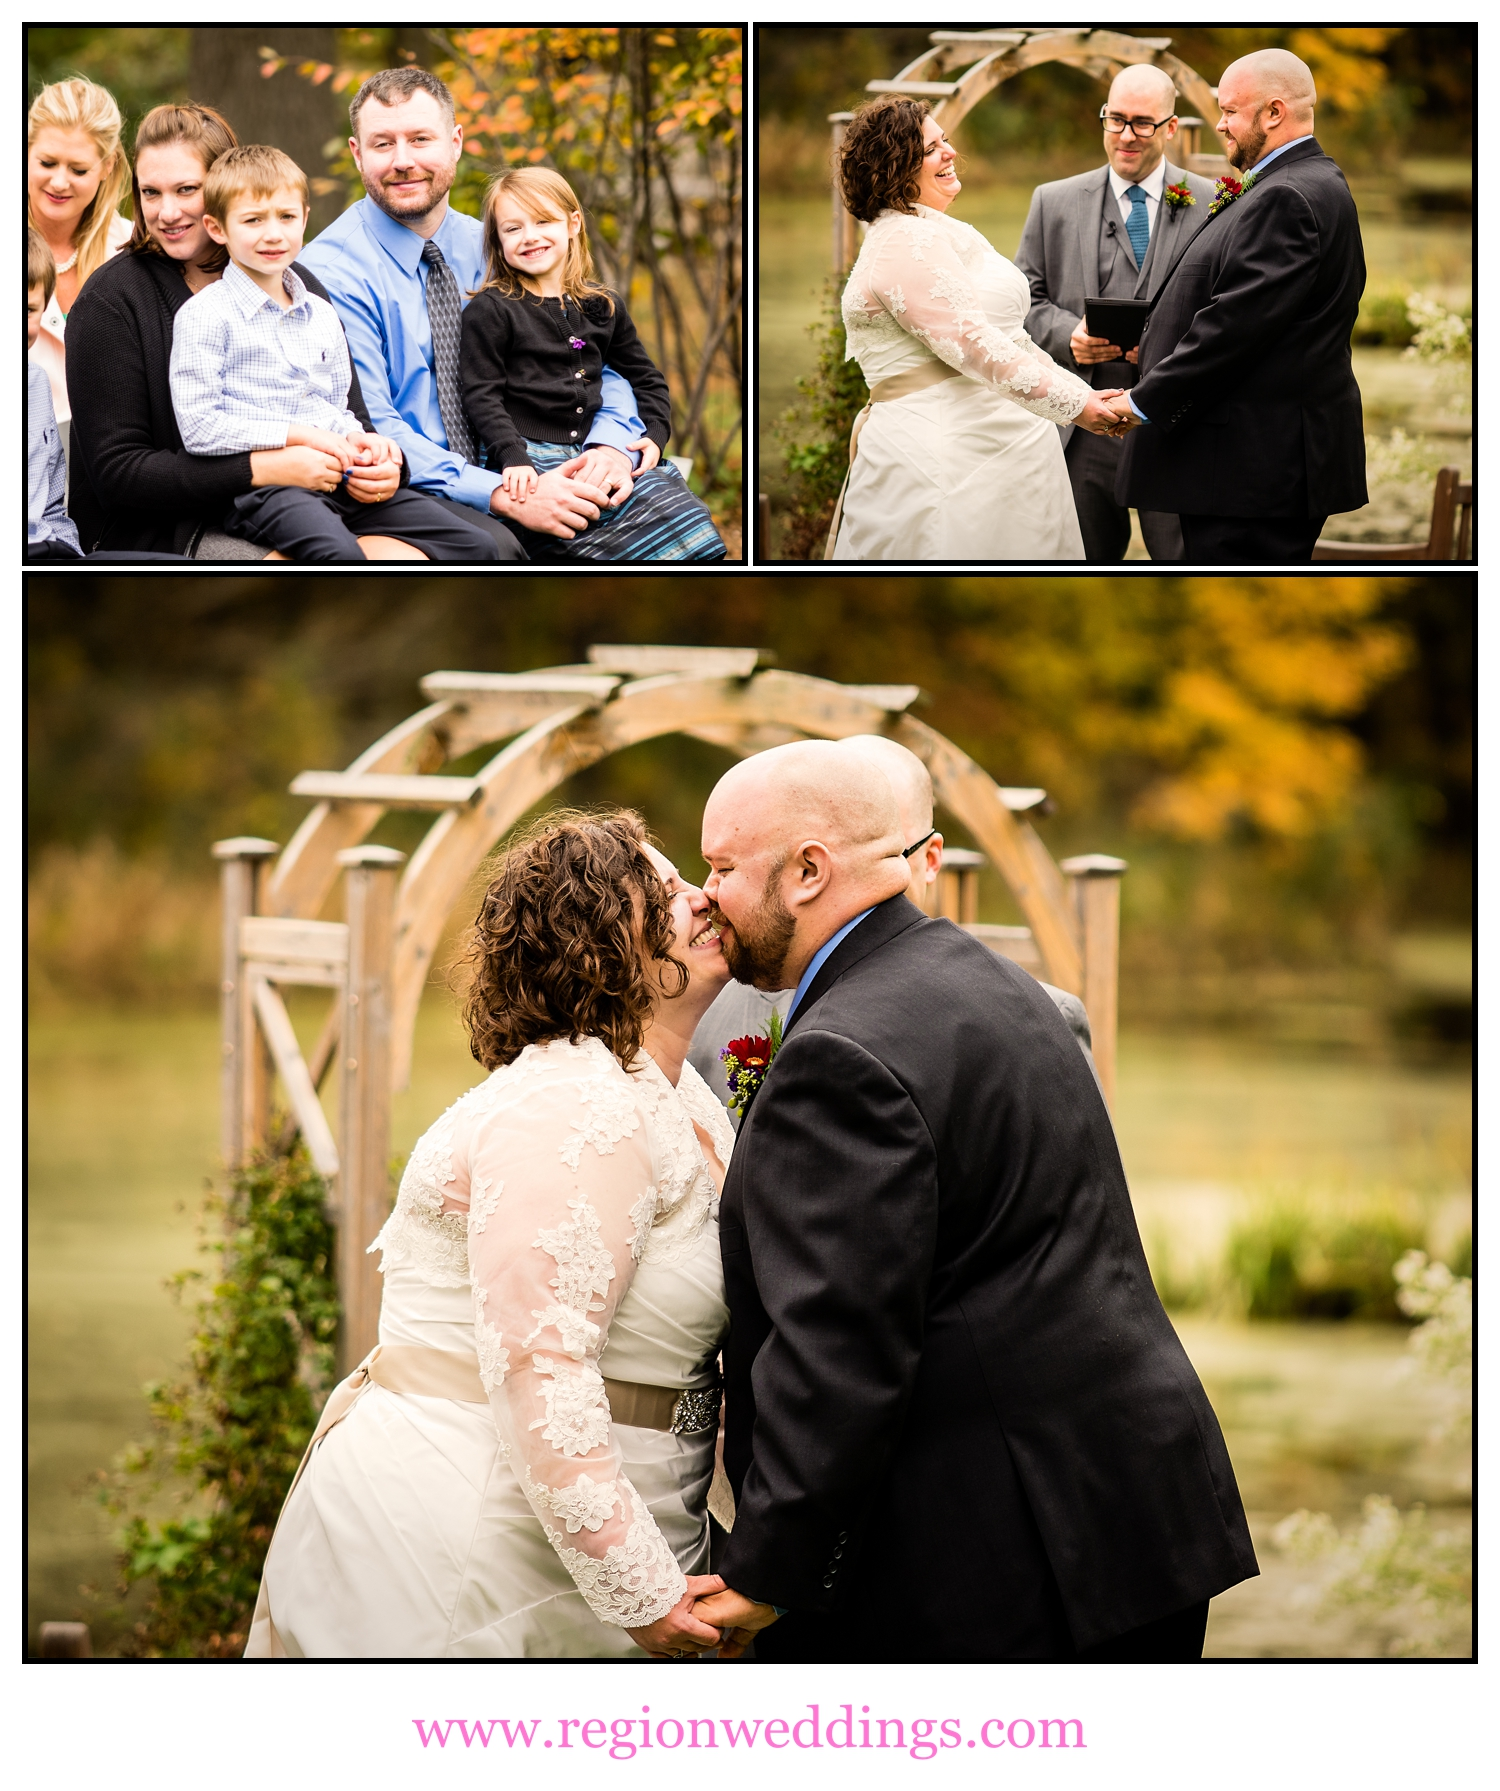 An outdoor wedding ceremony at Taltree Arboretum.